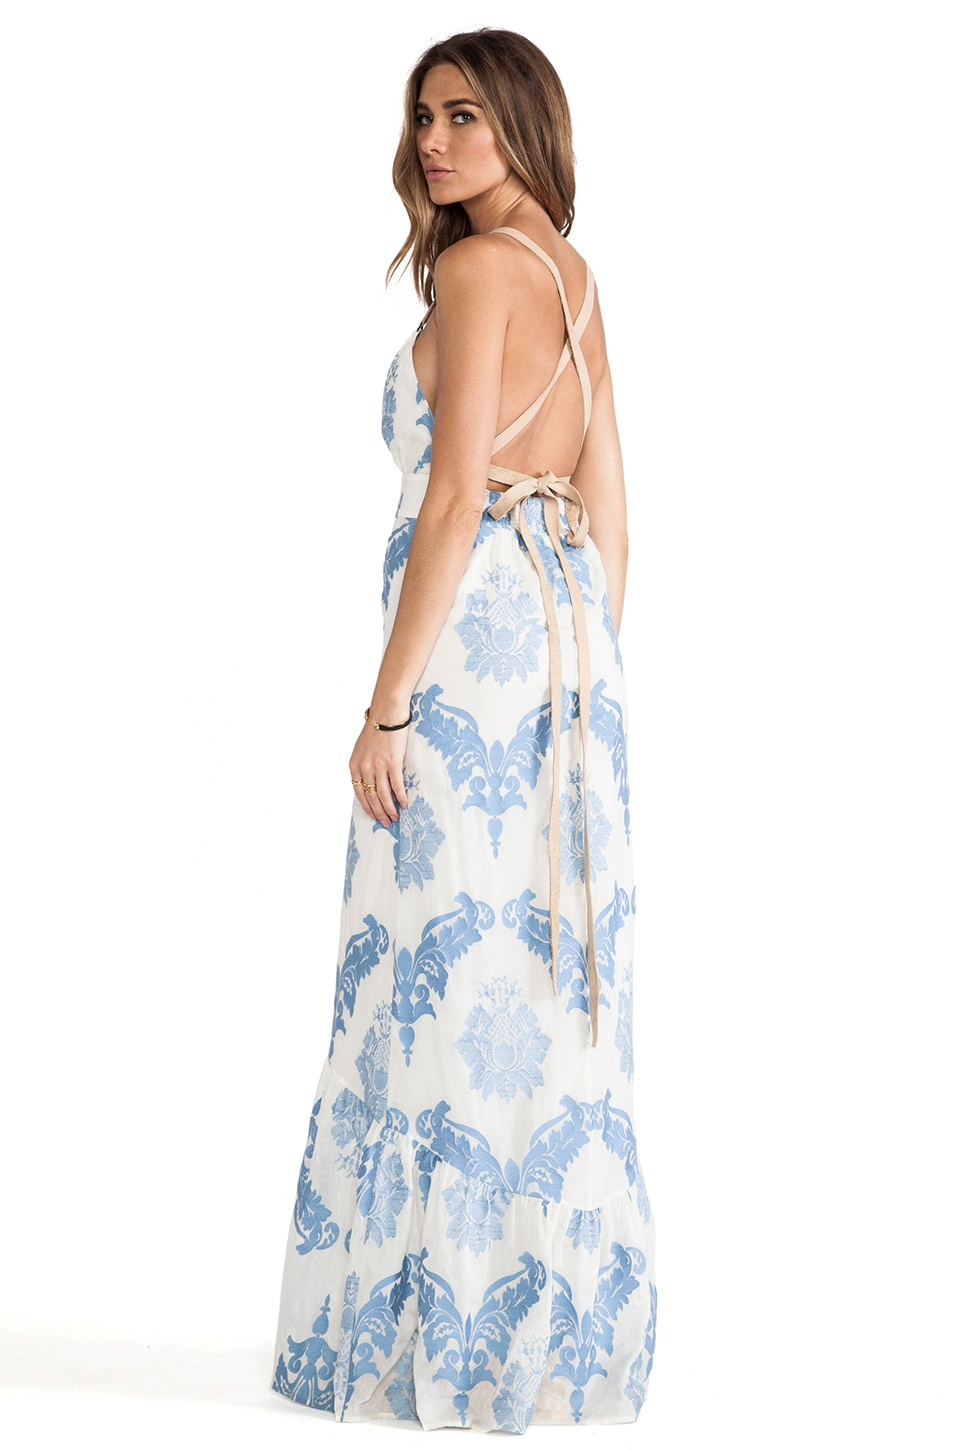 Twelfth Street By Cynthia Vincent Leather Strap Maxi Dress in White